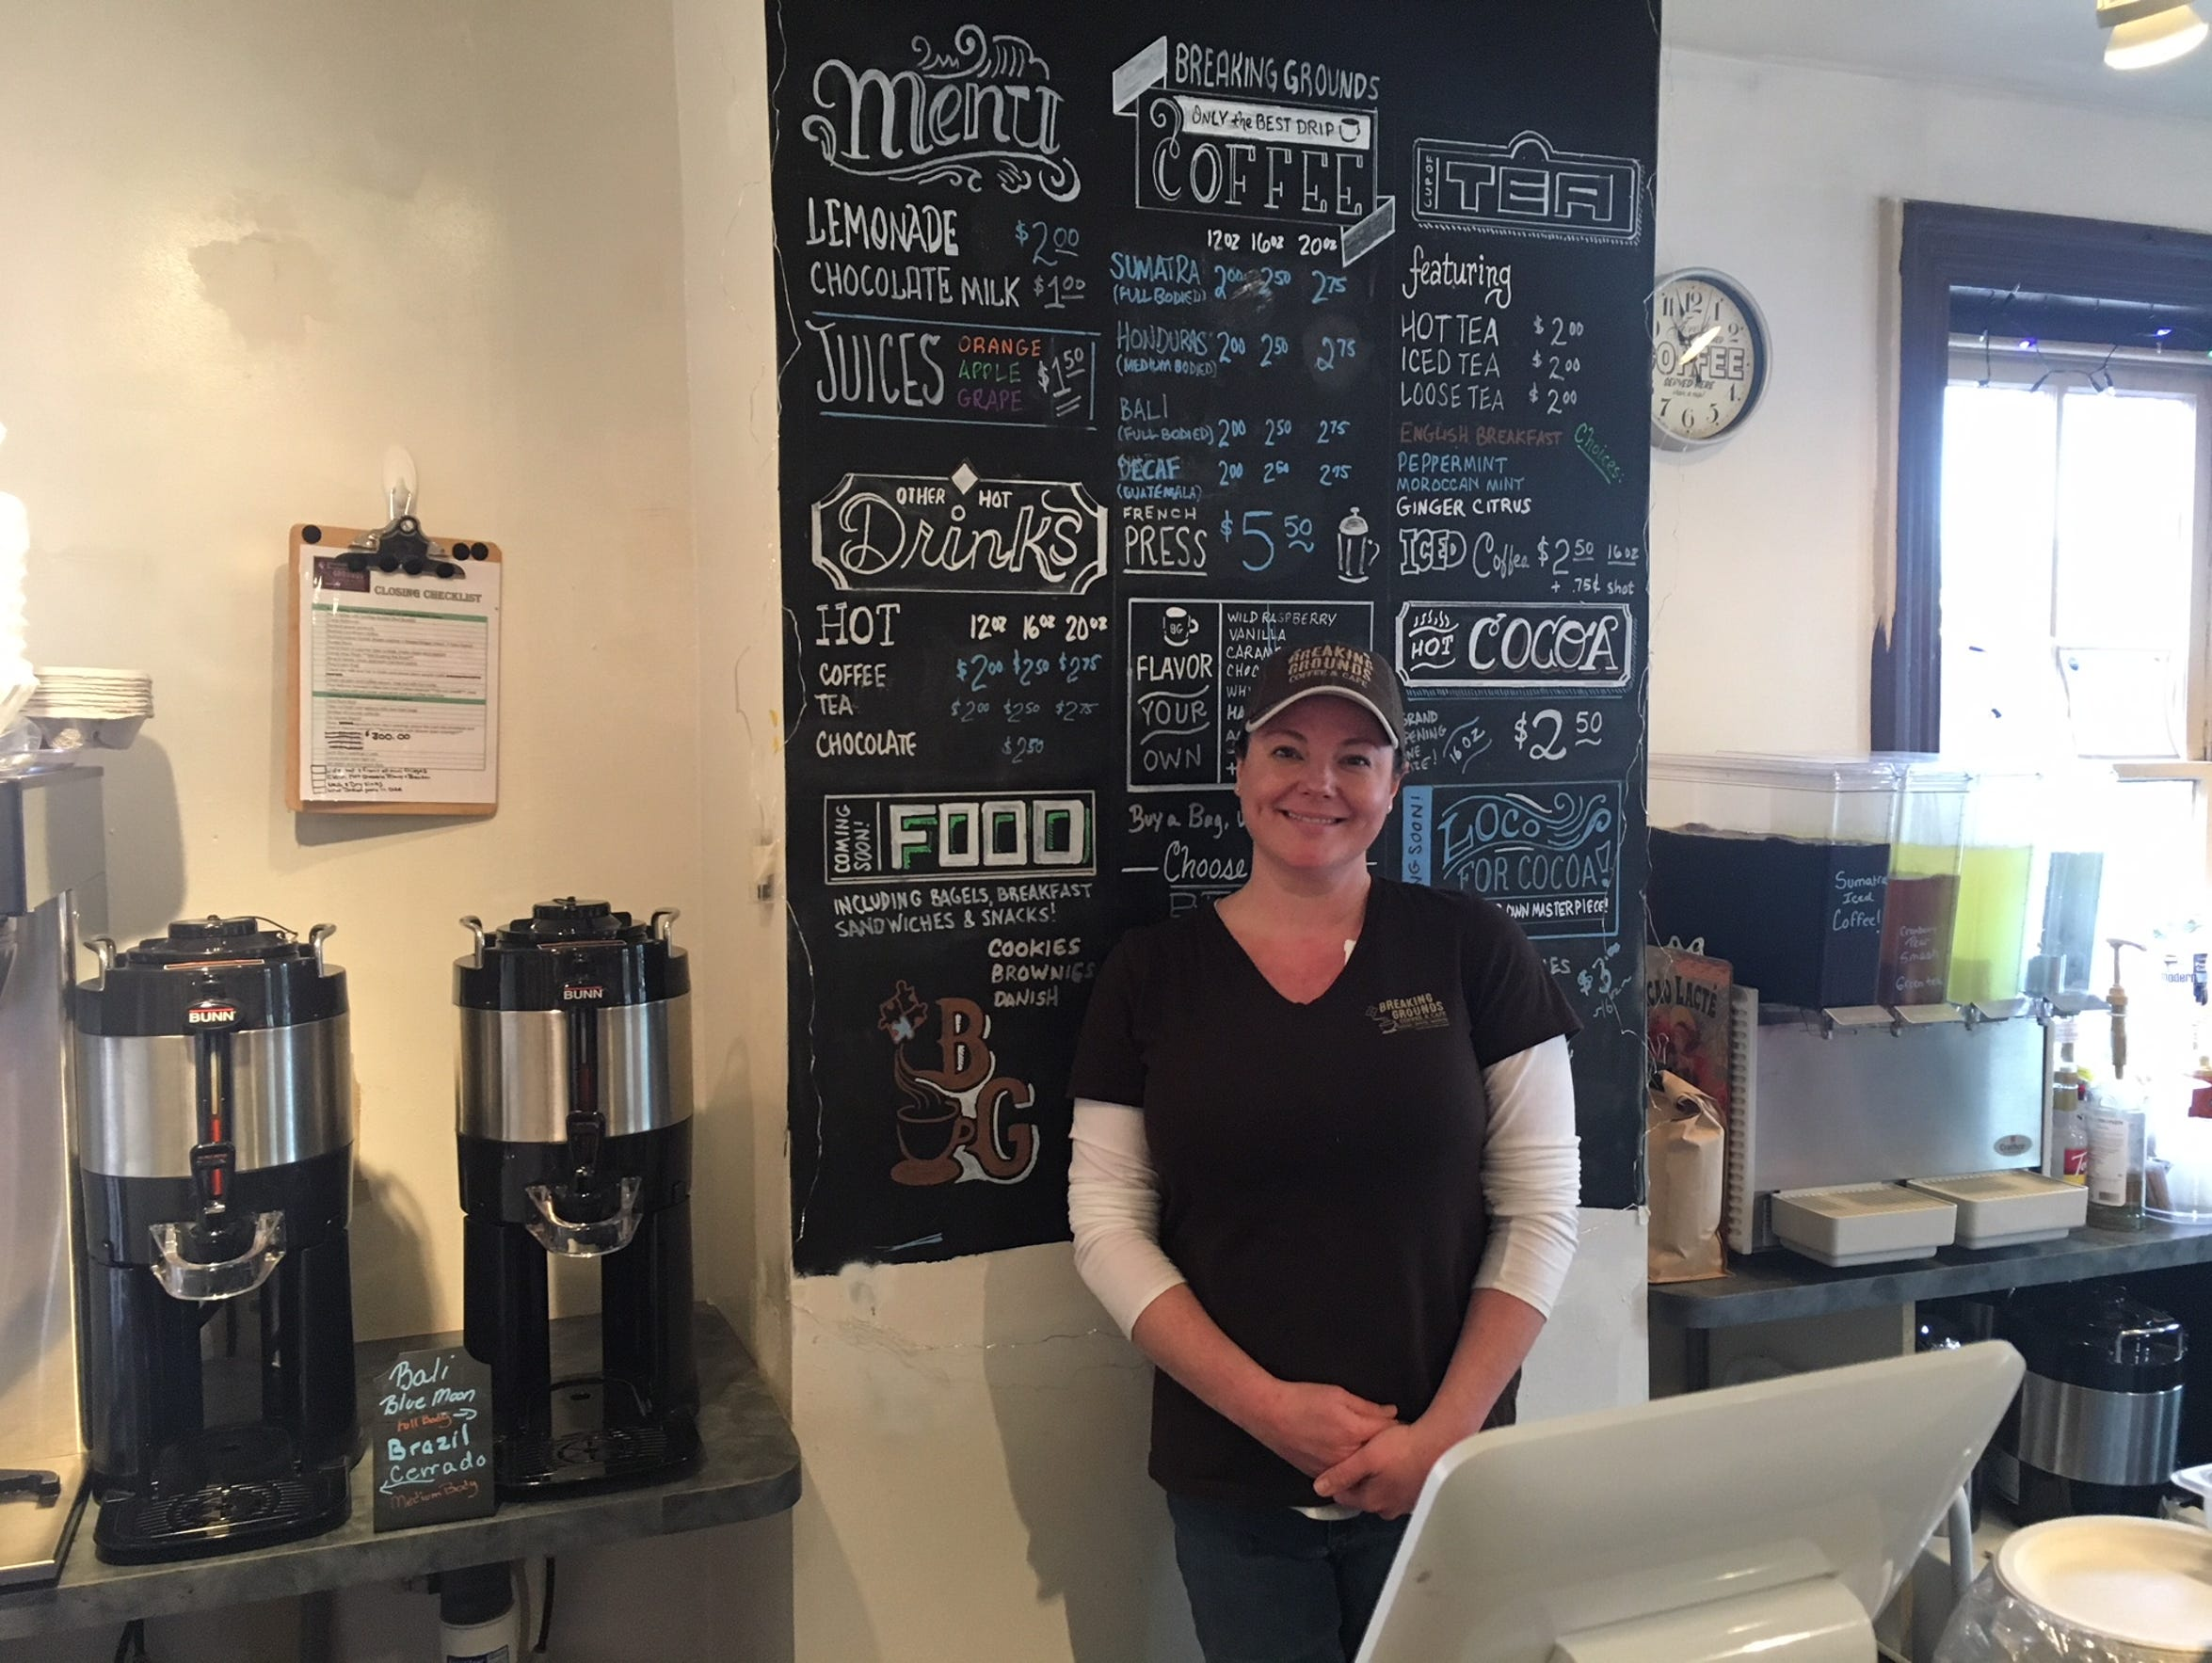 Brandi Fishman of Medford runs Breaking Grounds Coffee